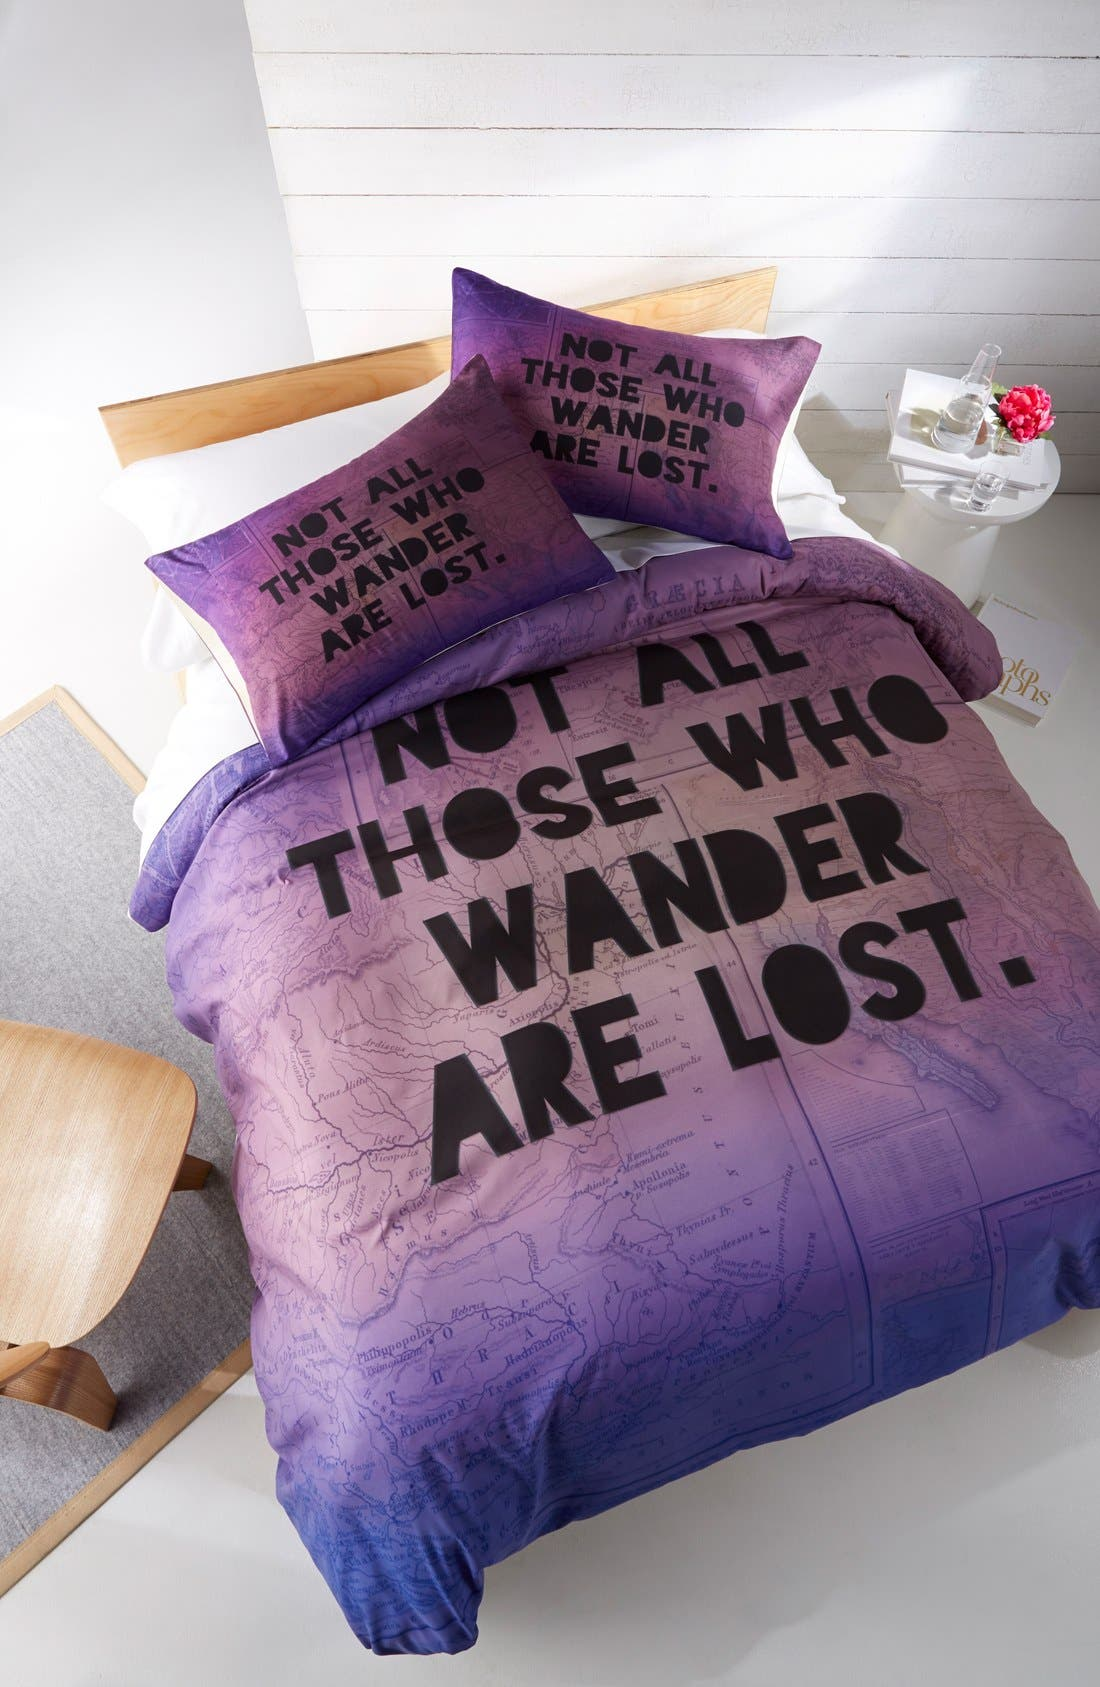 Alternate Image 1 Selected - DENY Designs 'Those Who Wander' Duvet Cover Set